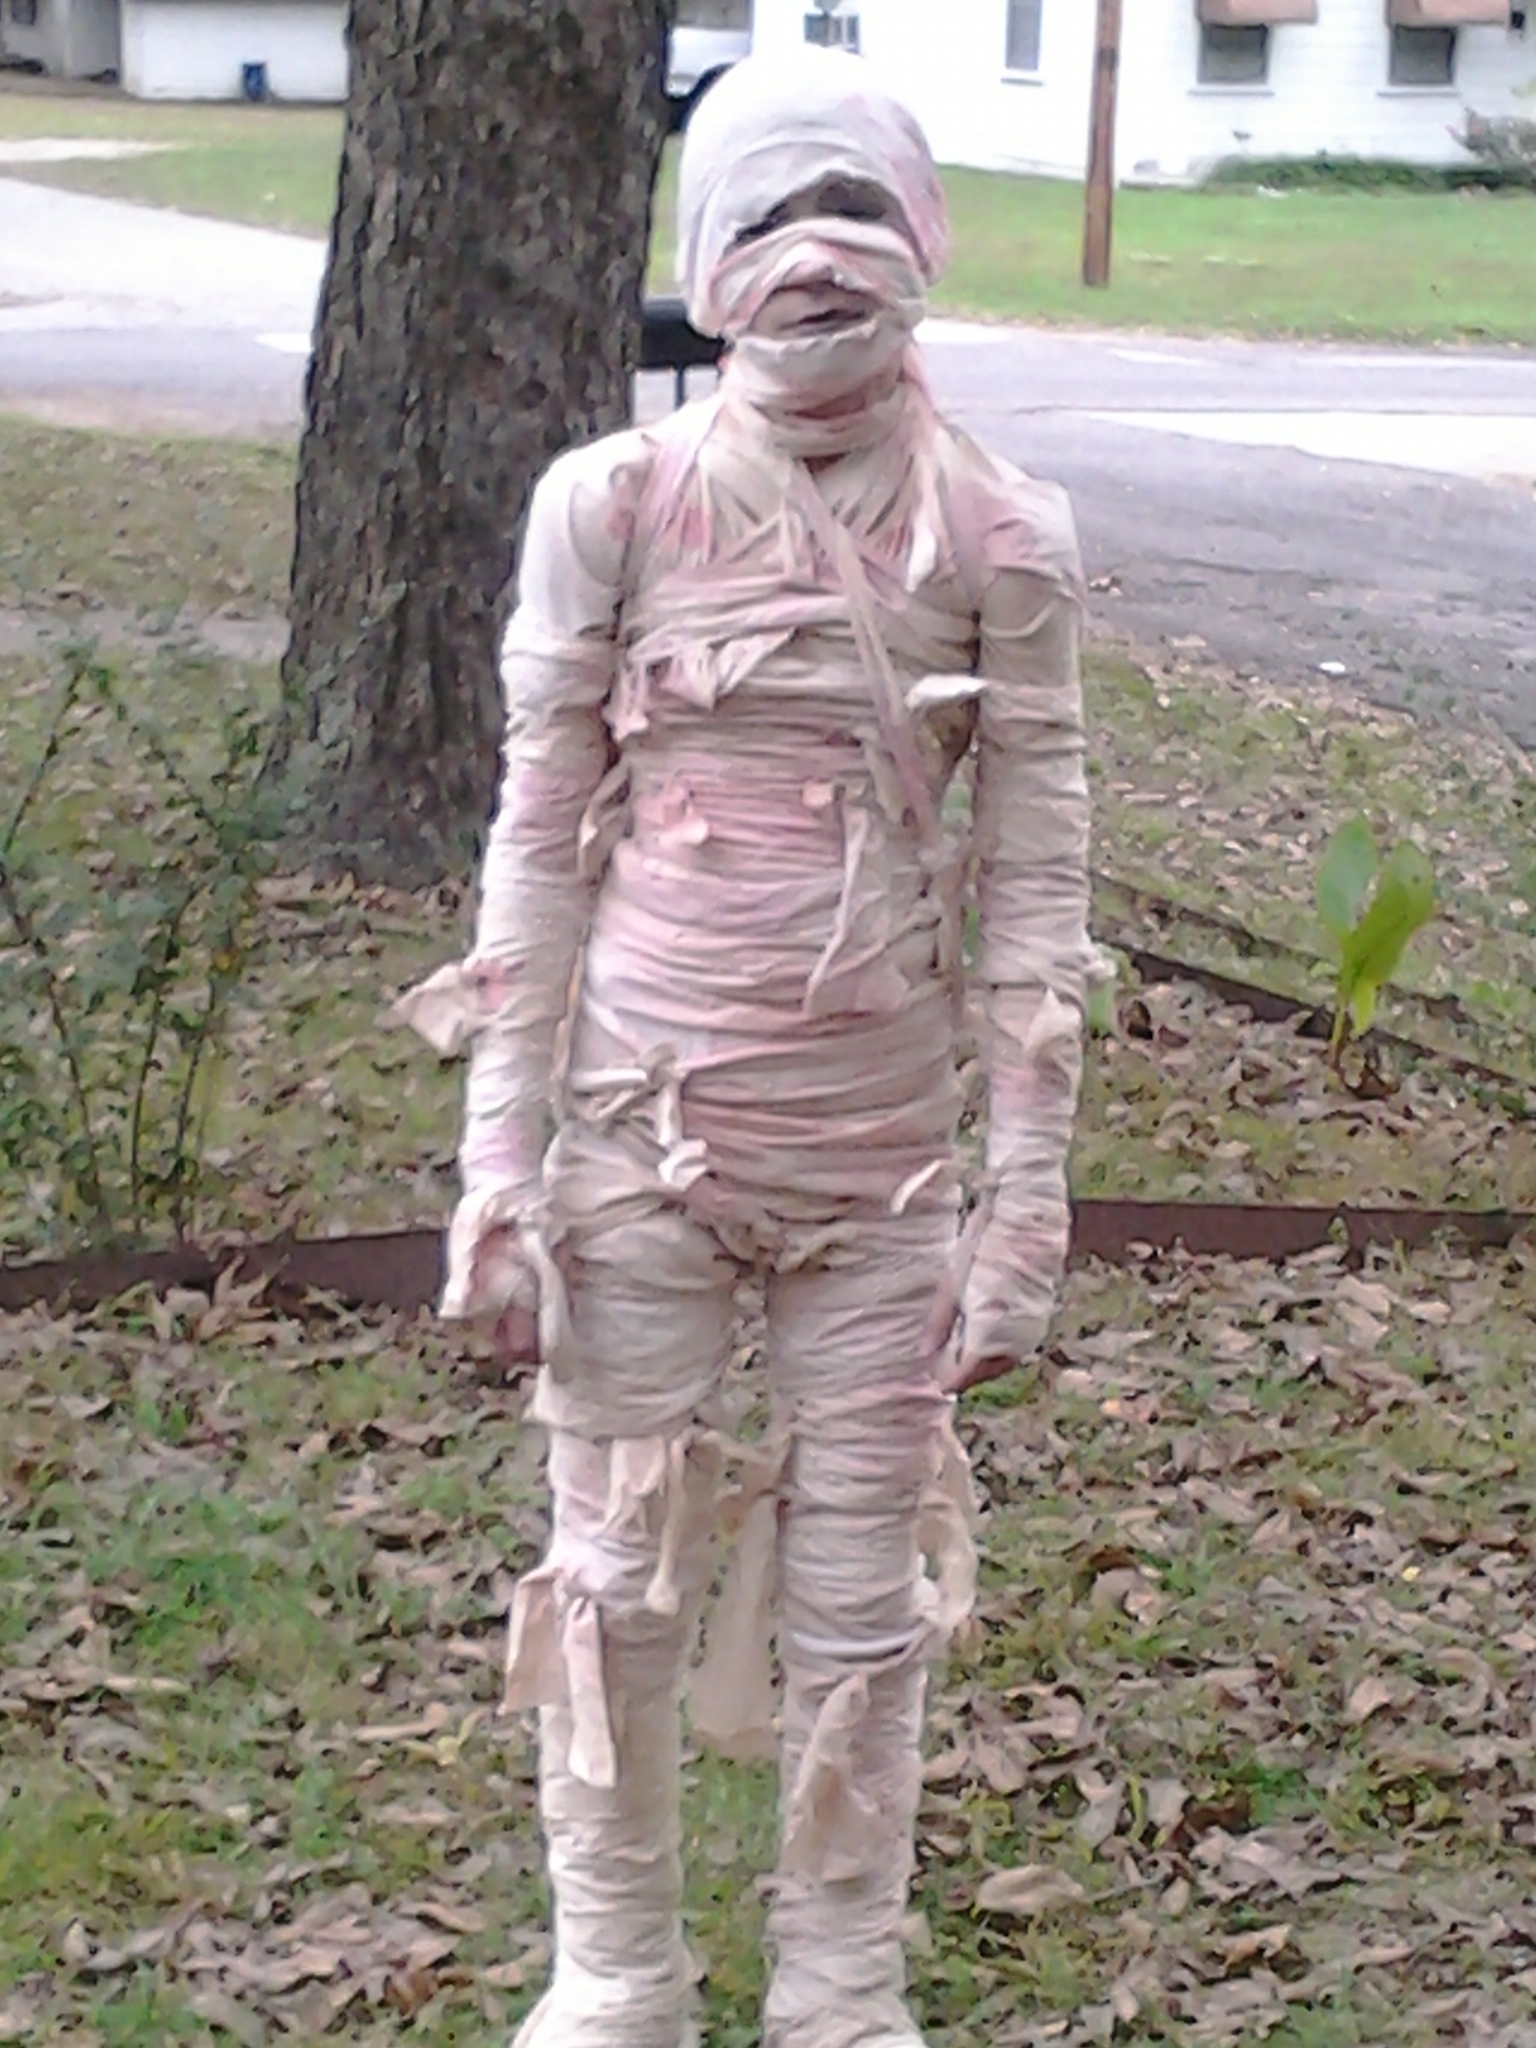 Zach the Mummy from Larry Townsend